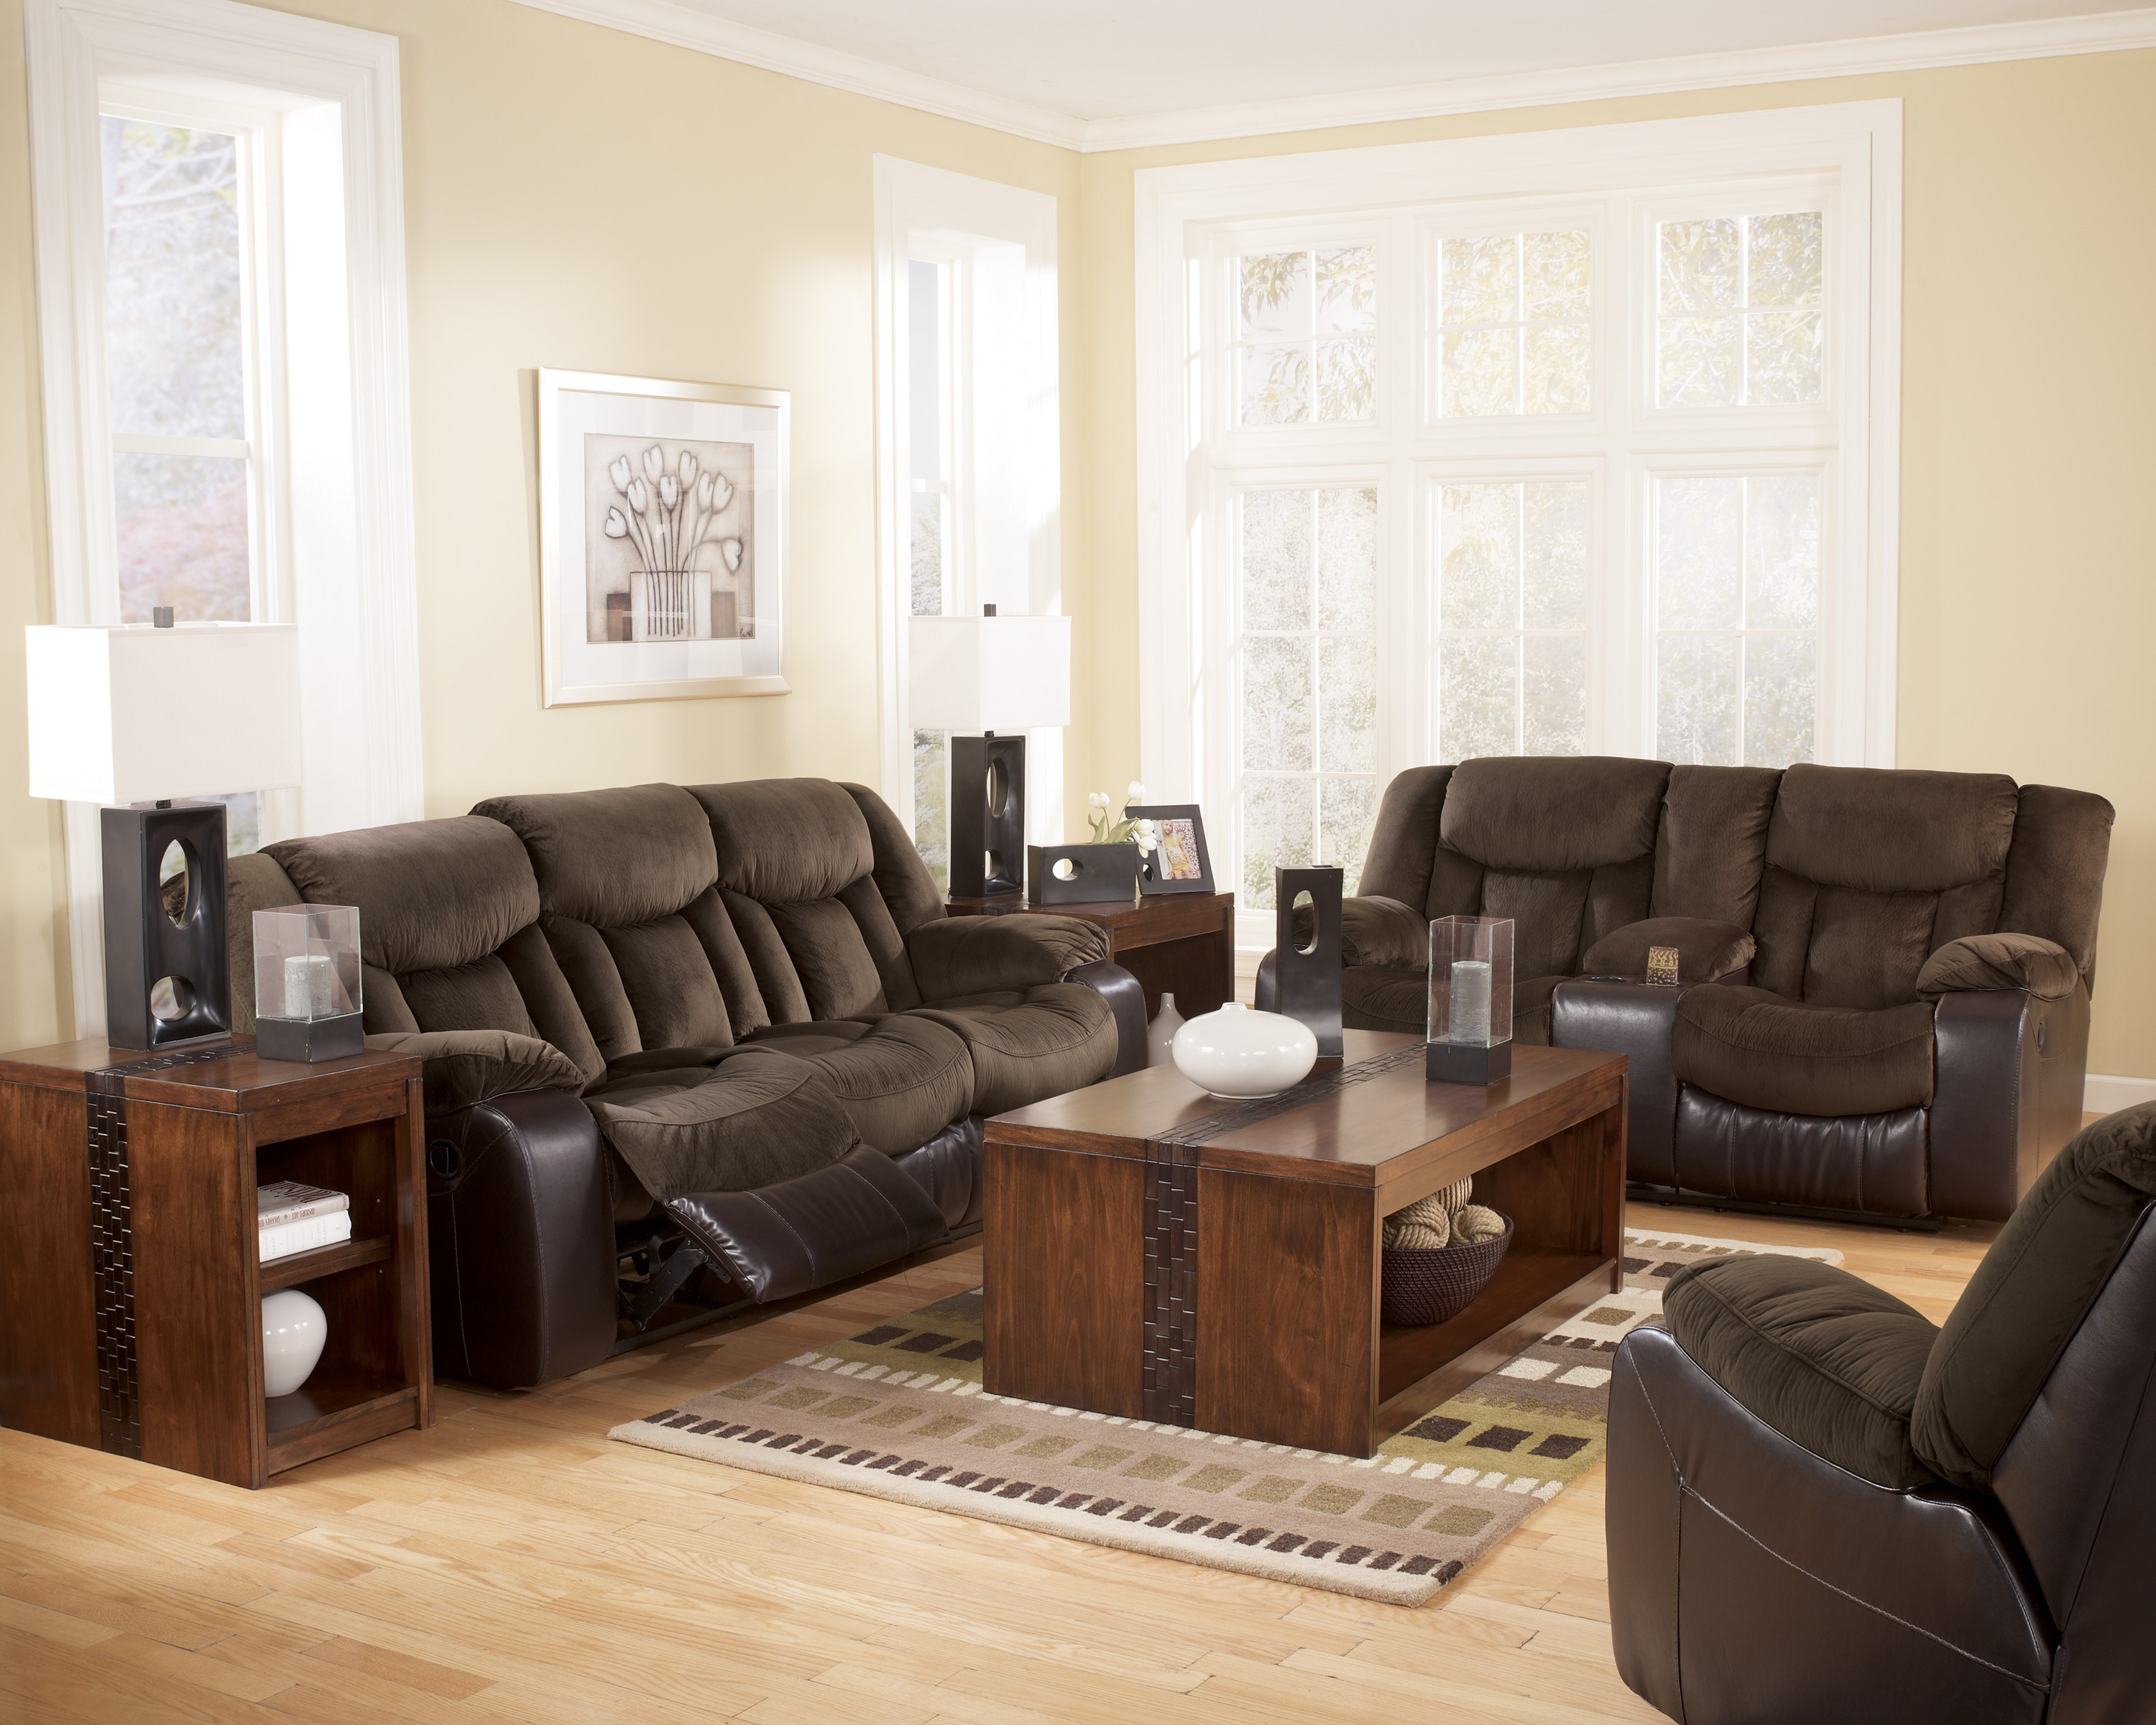 Tafton Java Double Reclining Loveseat With Console From Ashley 7920294 Coleman Furniture